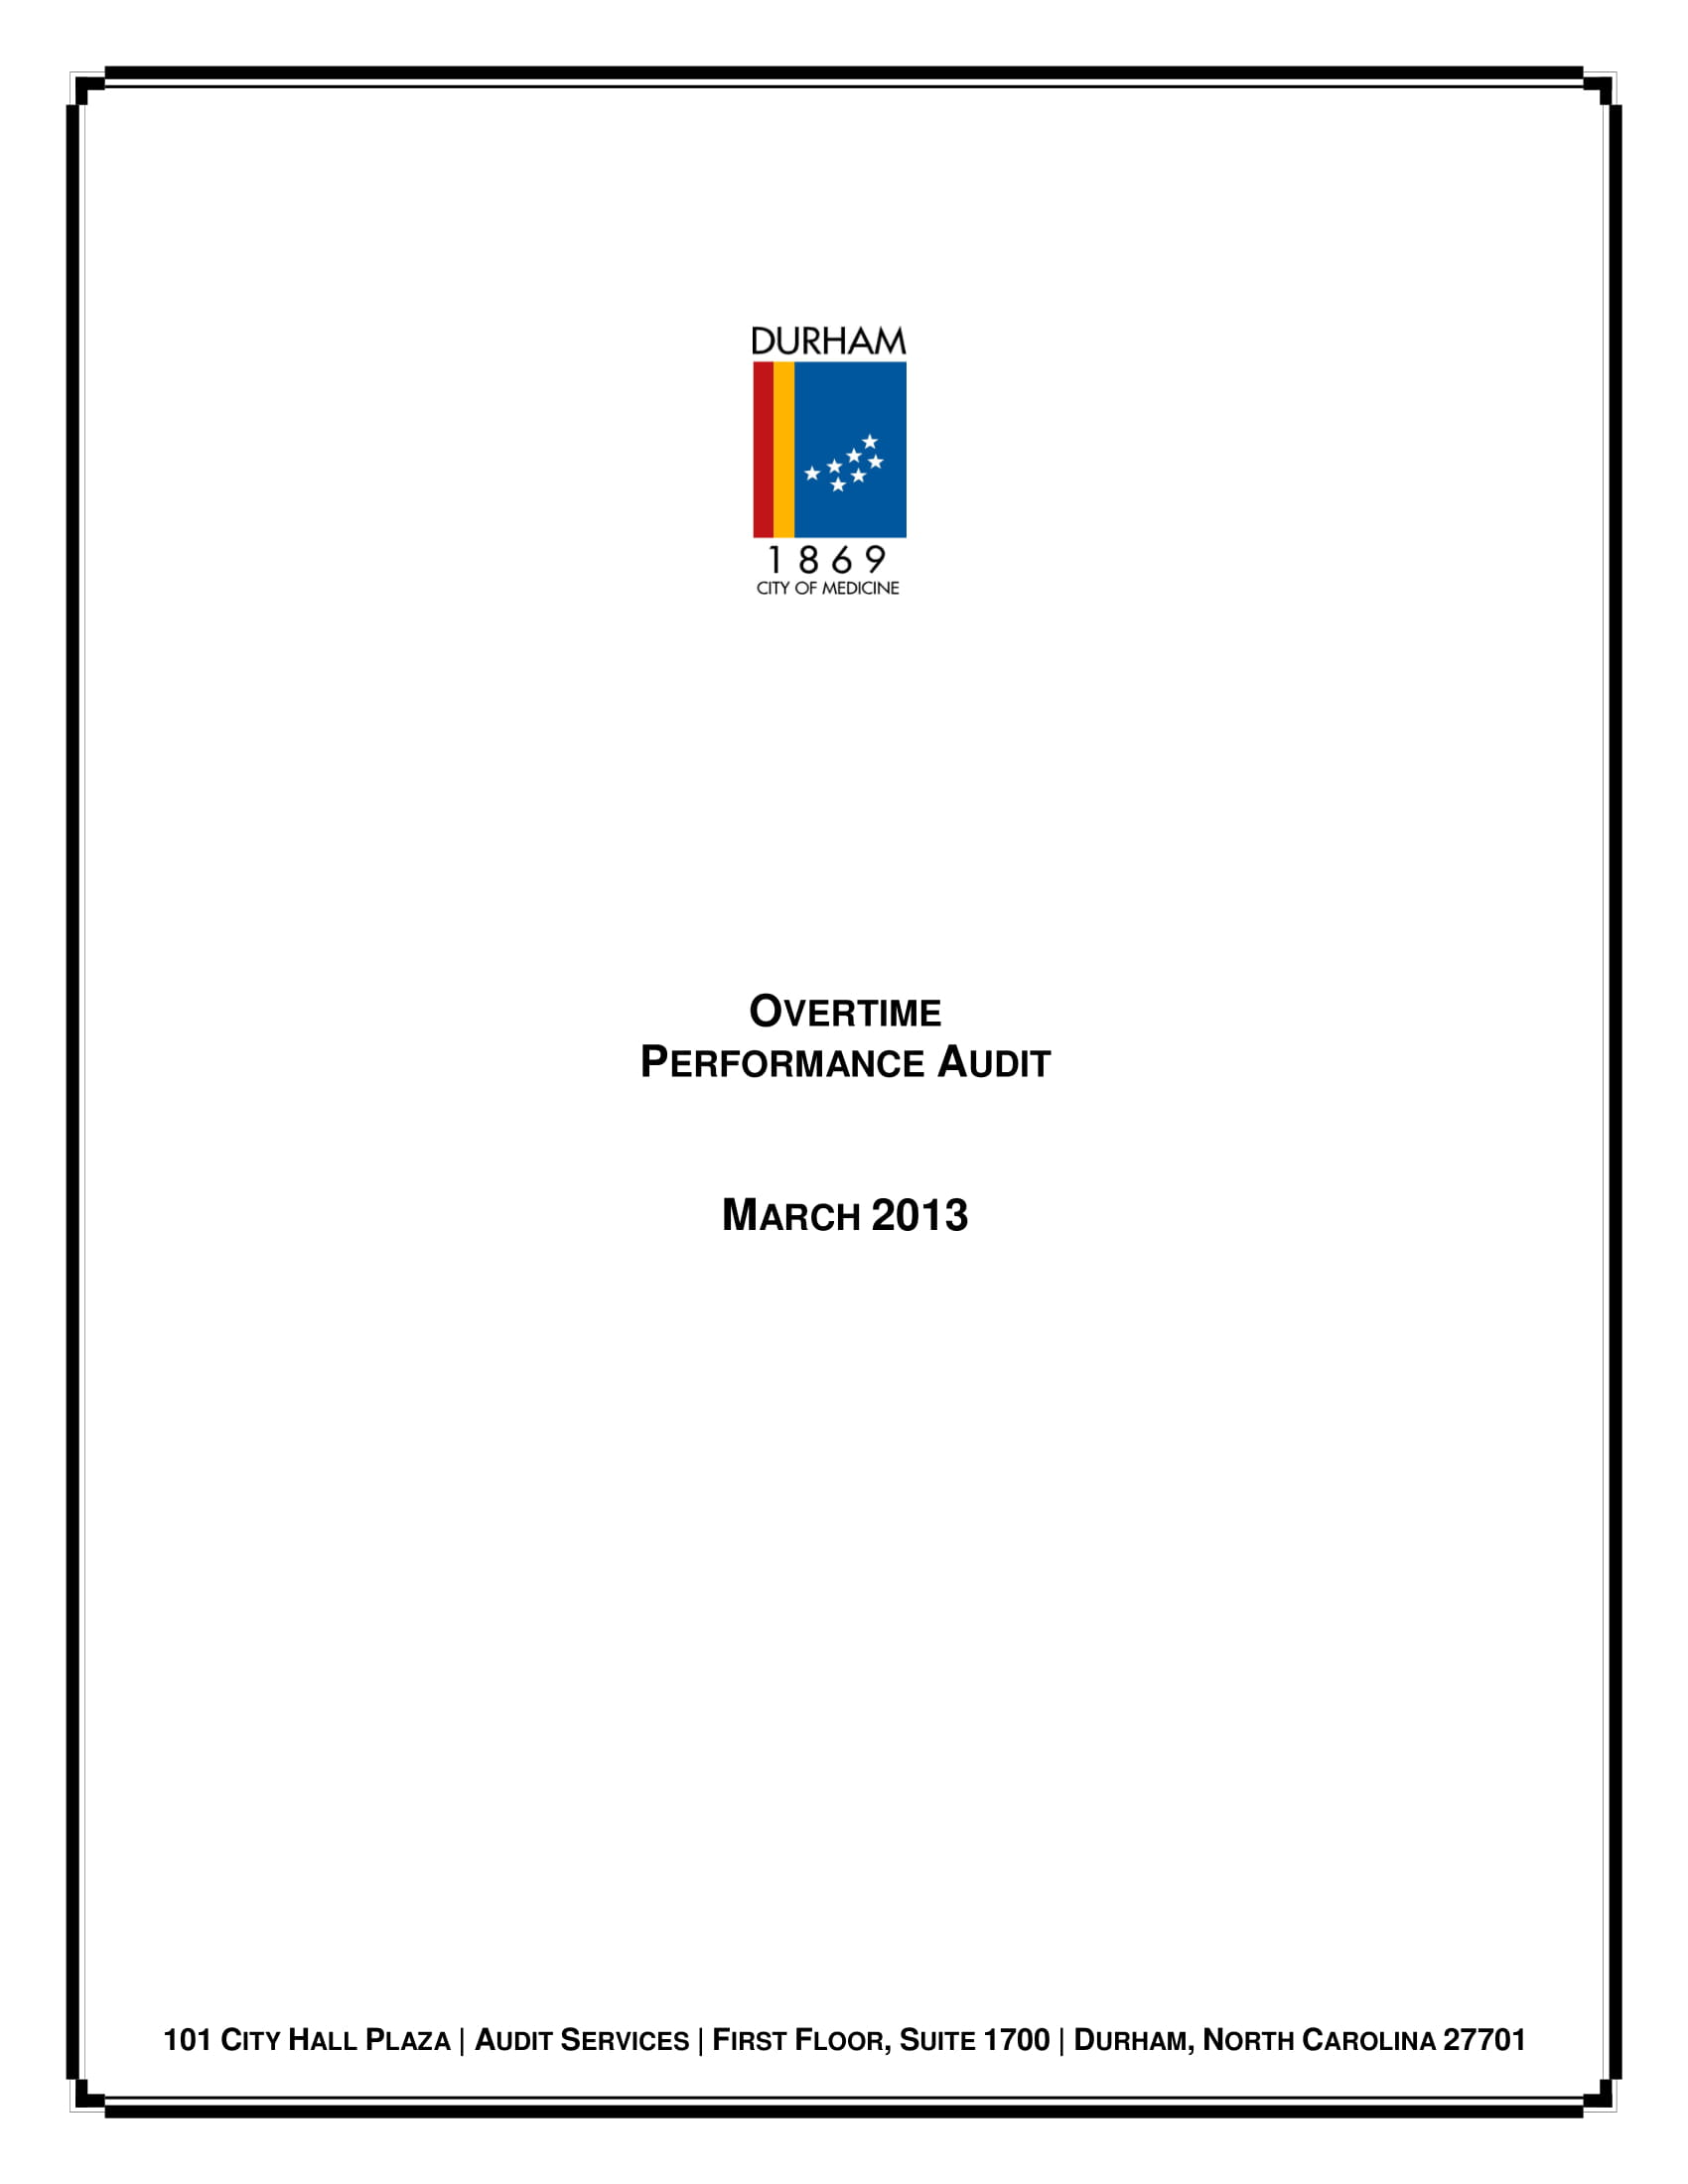 overtime performance audit report example